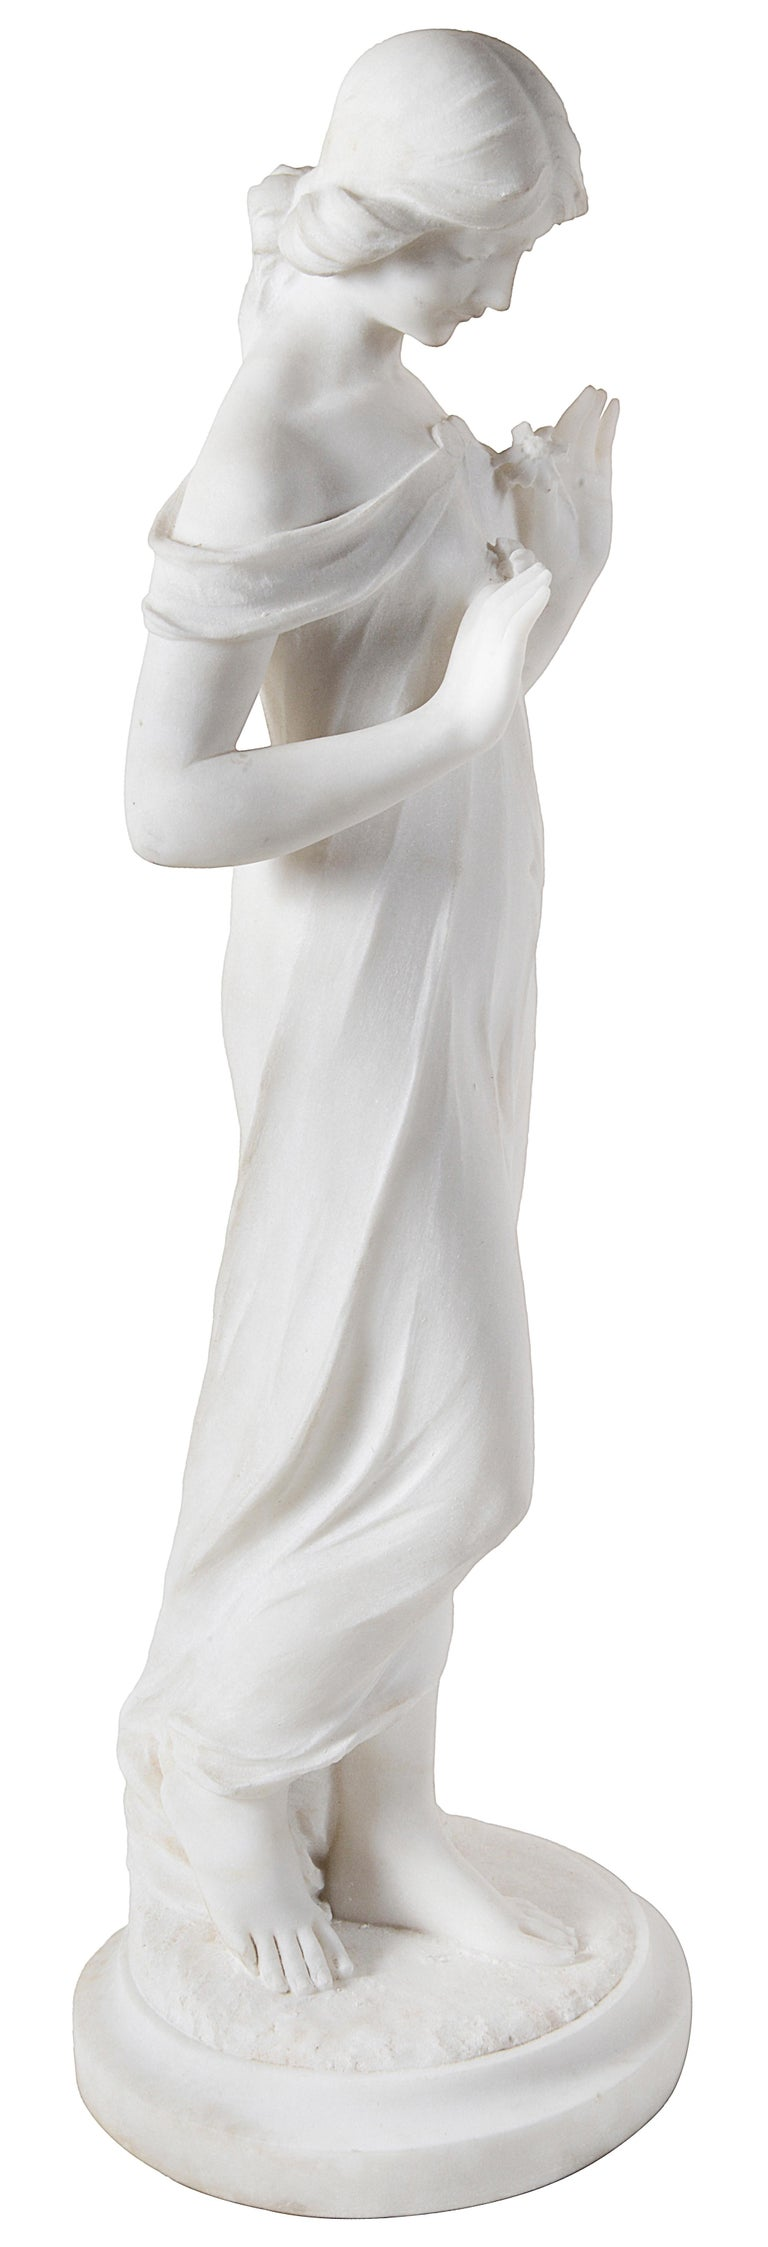 Hand-Carved 19th Century Marble Statue of Young Girl Holding Flowers For Sale